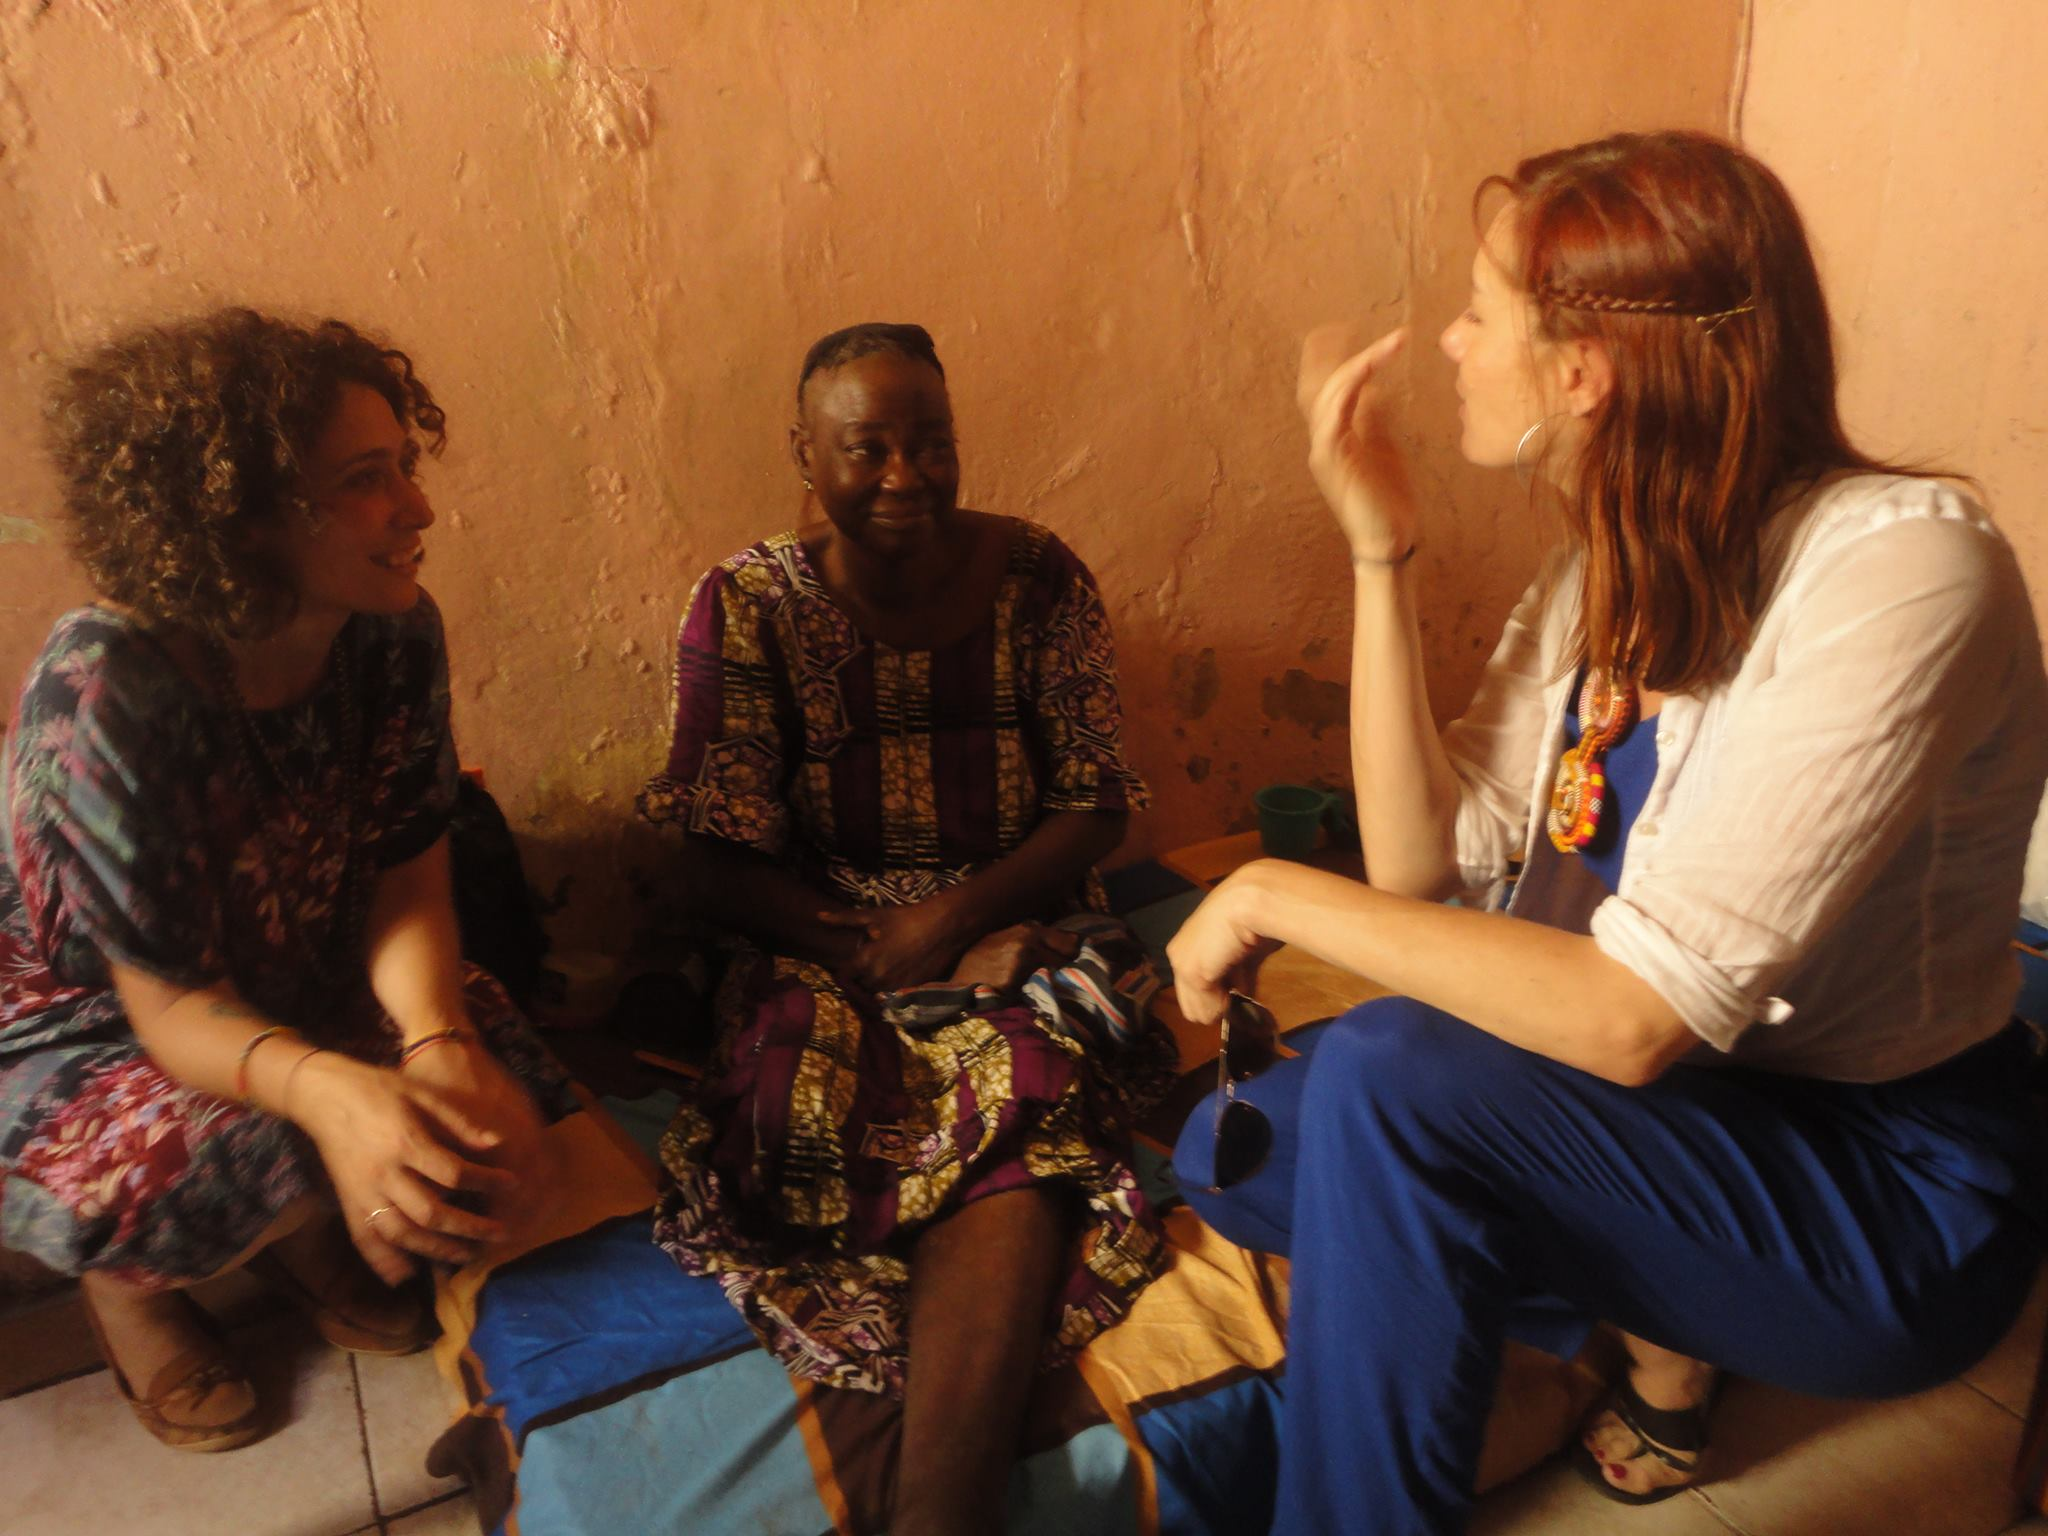 Research Methods - Doing ethnical and collaborative work with women, youth and minoritized people worldwide.